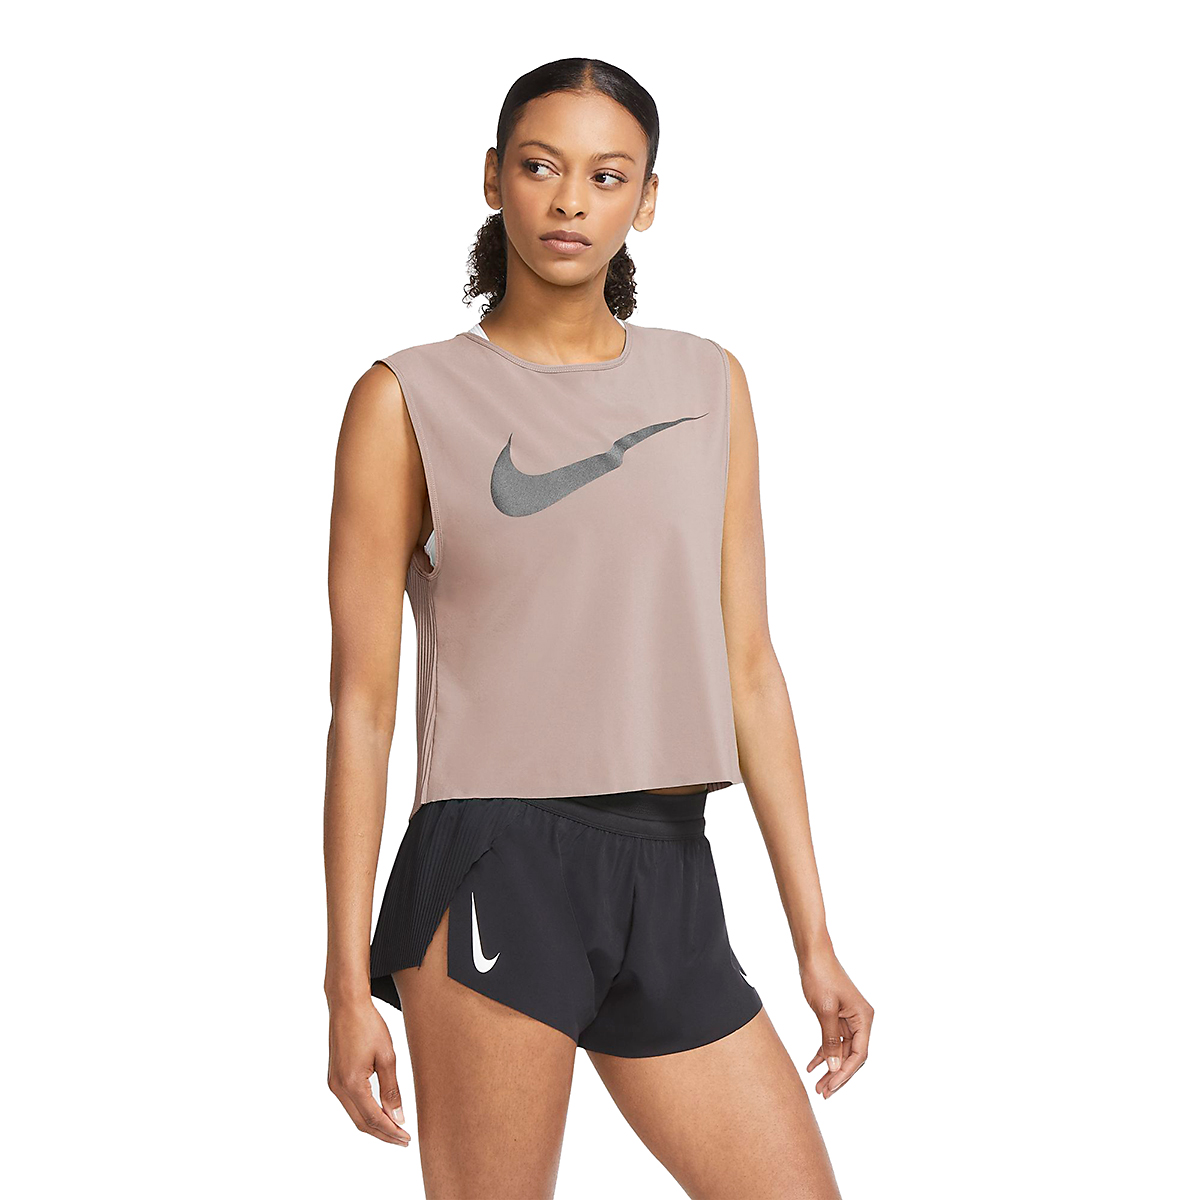 Women's Nike Pleated Run Division Tank - Color: Fossil Stone - Size: XS, Fossil Stone, large, image 1